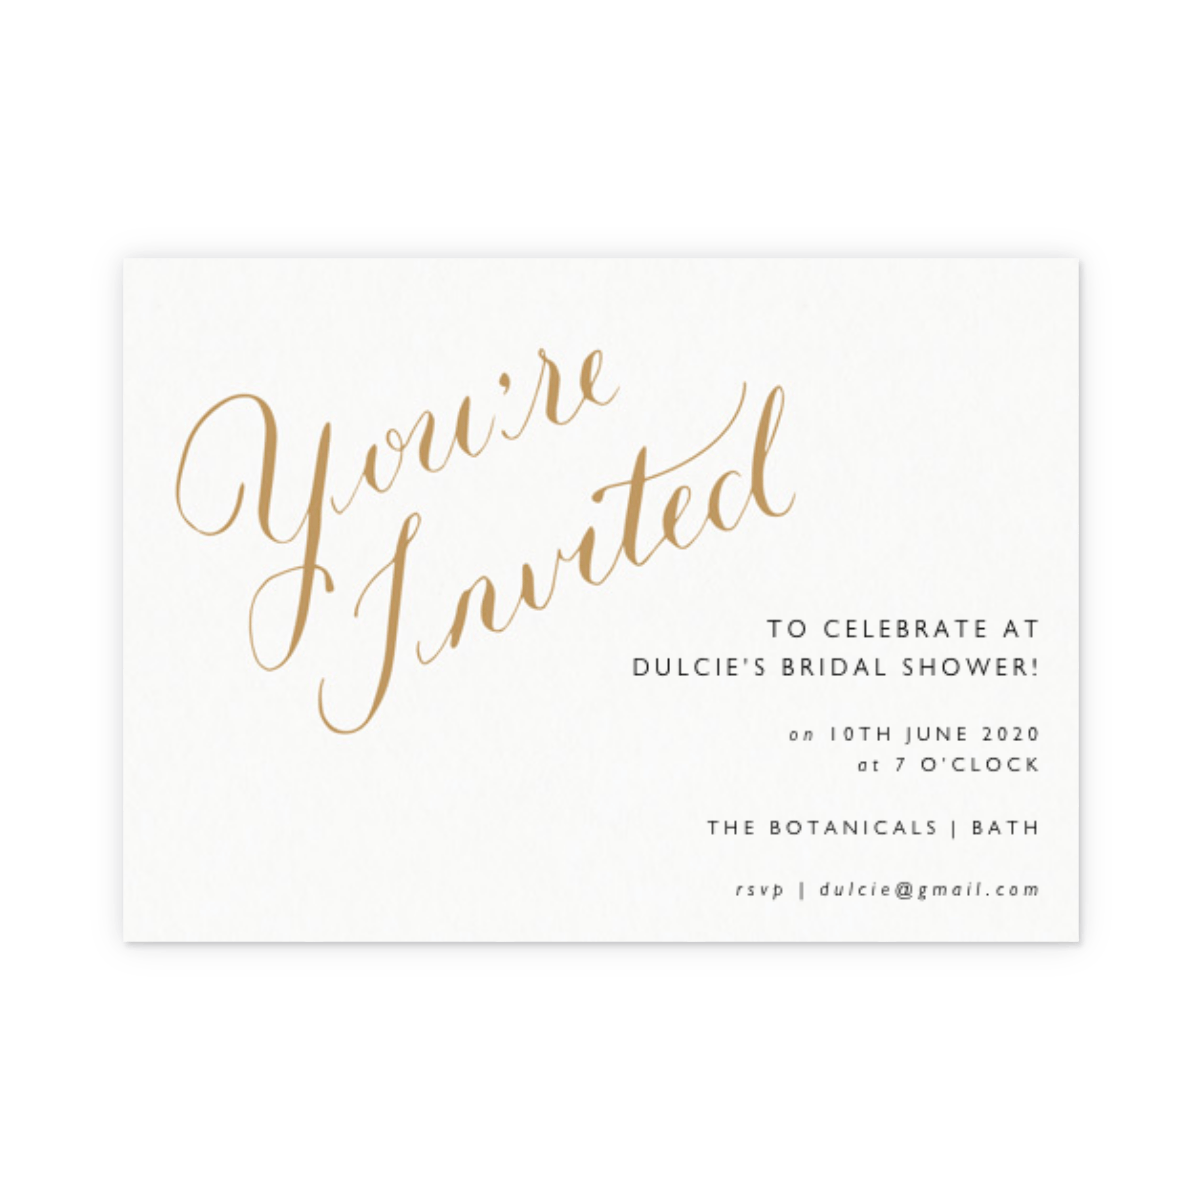 Https%3a%2f%2fwww.papier.com%2fproduct image%2f83470%2f10%2fyou re invited calligrafia gold 20190 front 1565209199.png?ixlib=rb 1.1